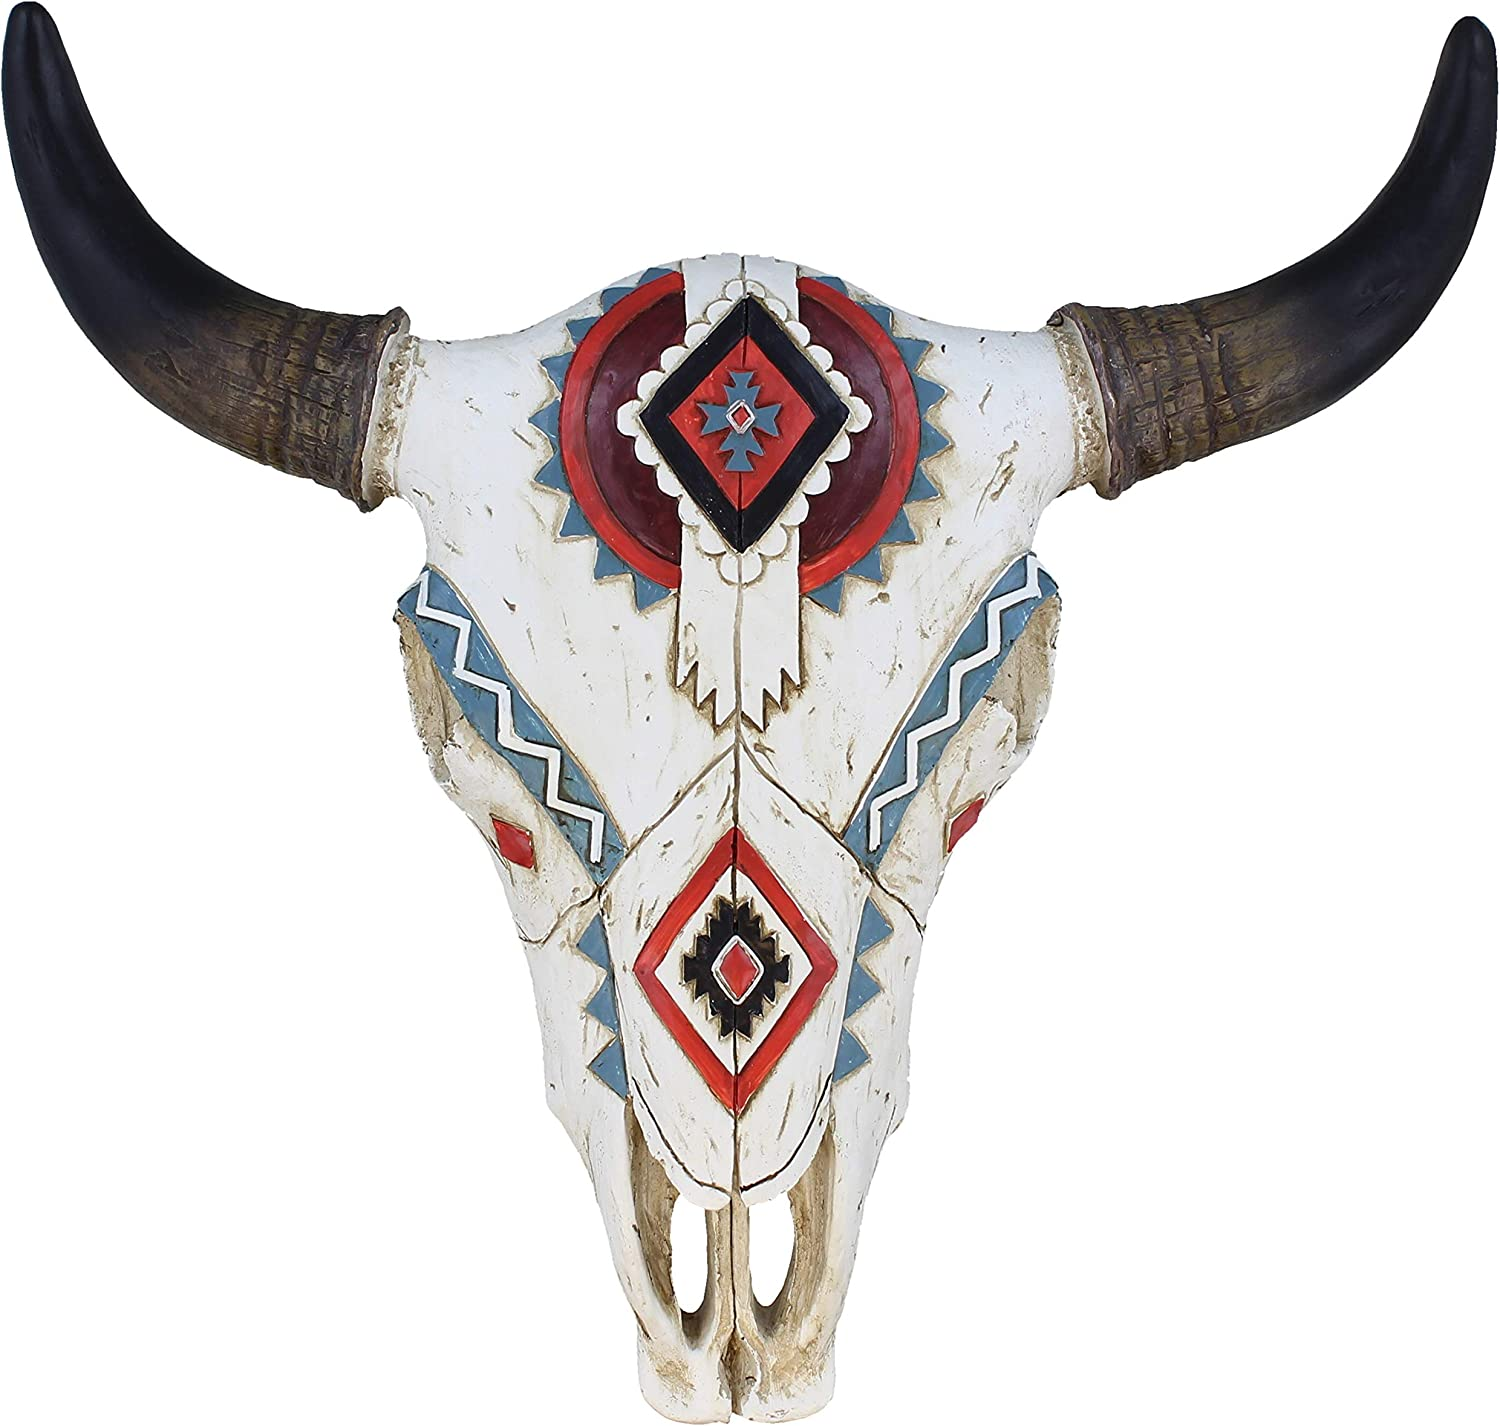 Tribal Design Carved Painted Steer Bull Cow Skull - Wall Mount Head - Rustic Western Sculpture